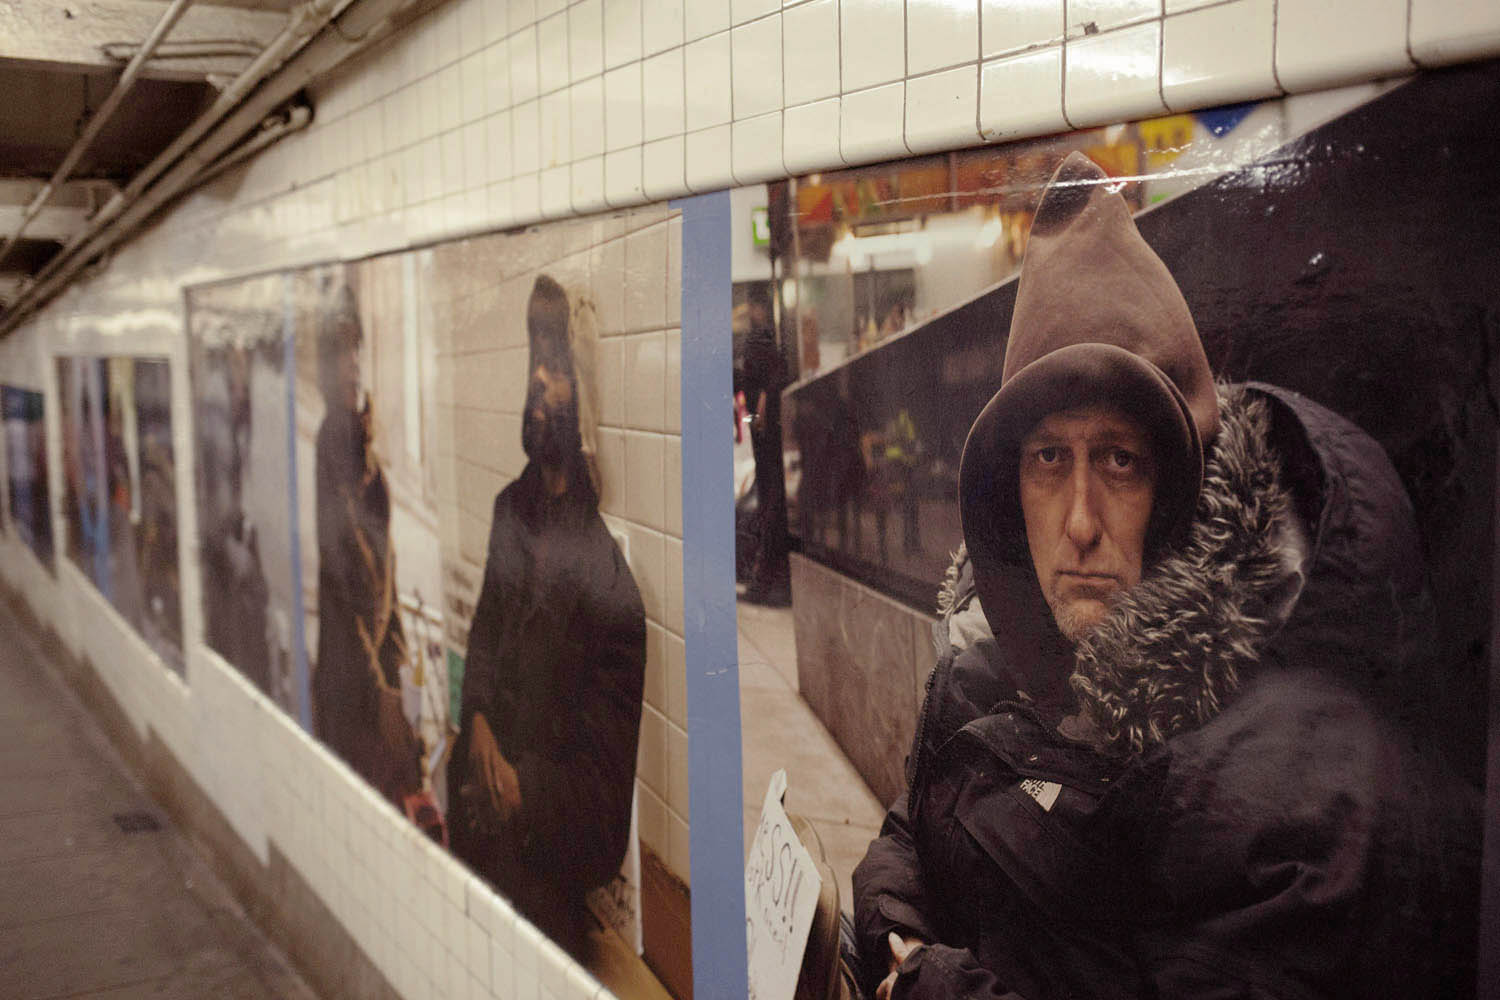 Artist Andres Serrano's photographic installation, Residents of New York, at the West 4th Street subway  station in New York City.